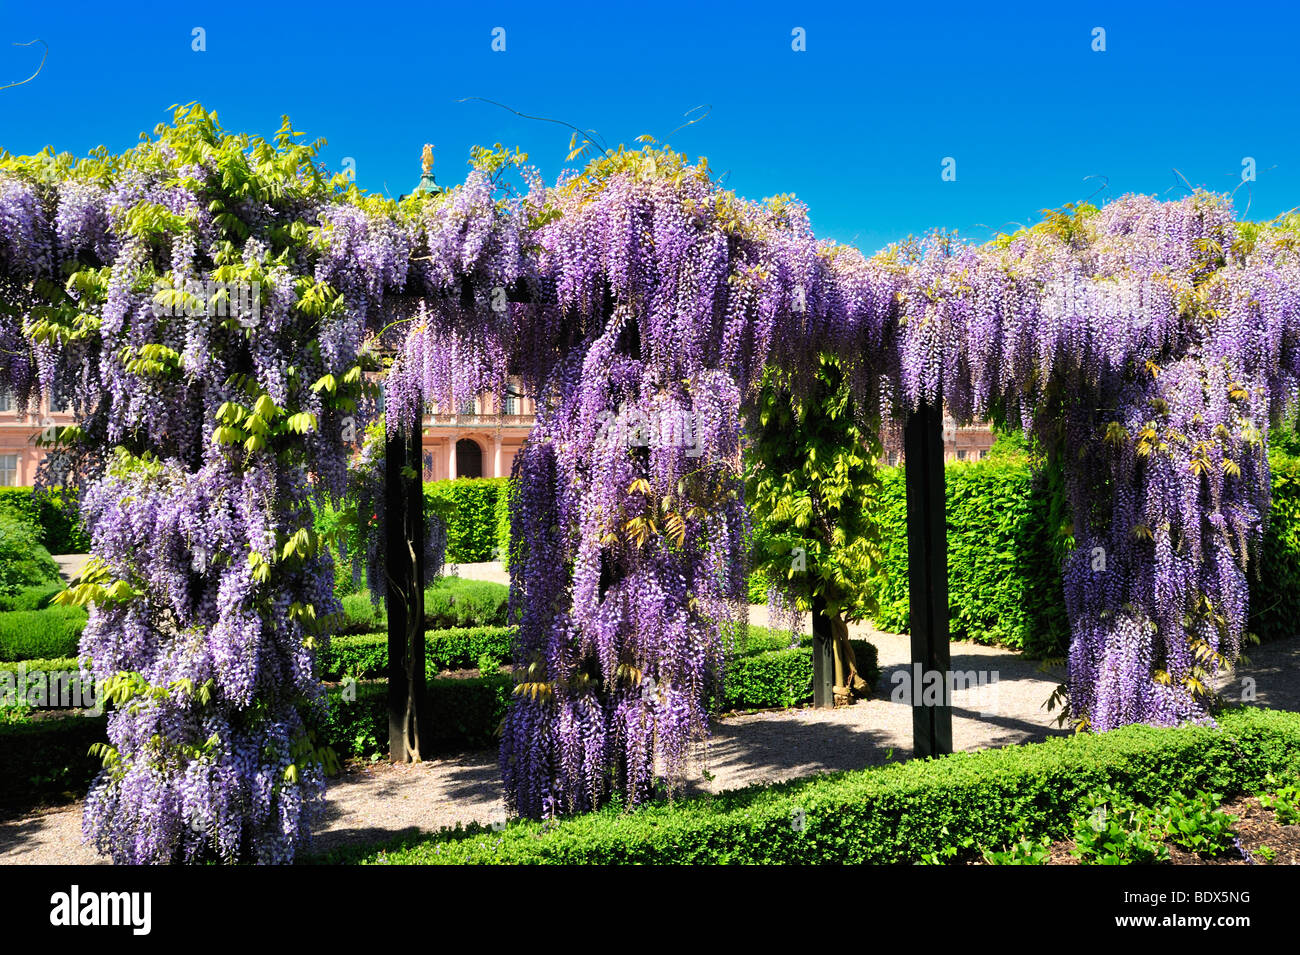 Pergola With Chinese Wisteria Sinensis In The Palace Garden Of Schloss Rastatt Castle Schwarzwald Baden W